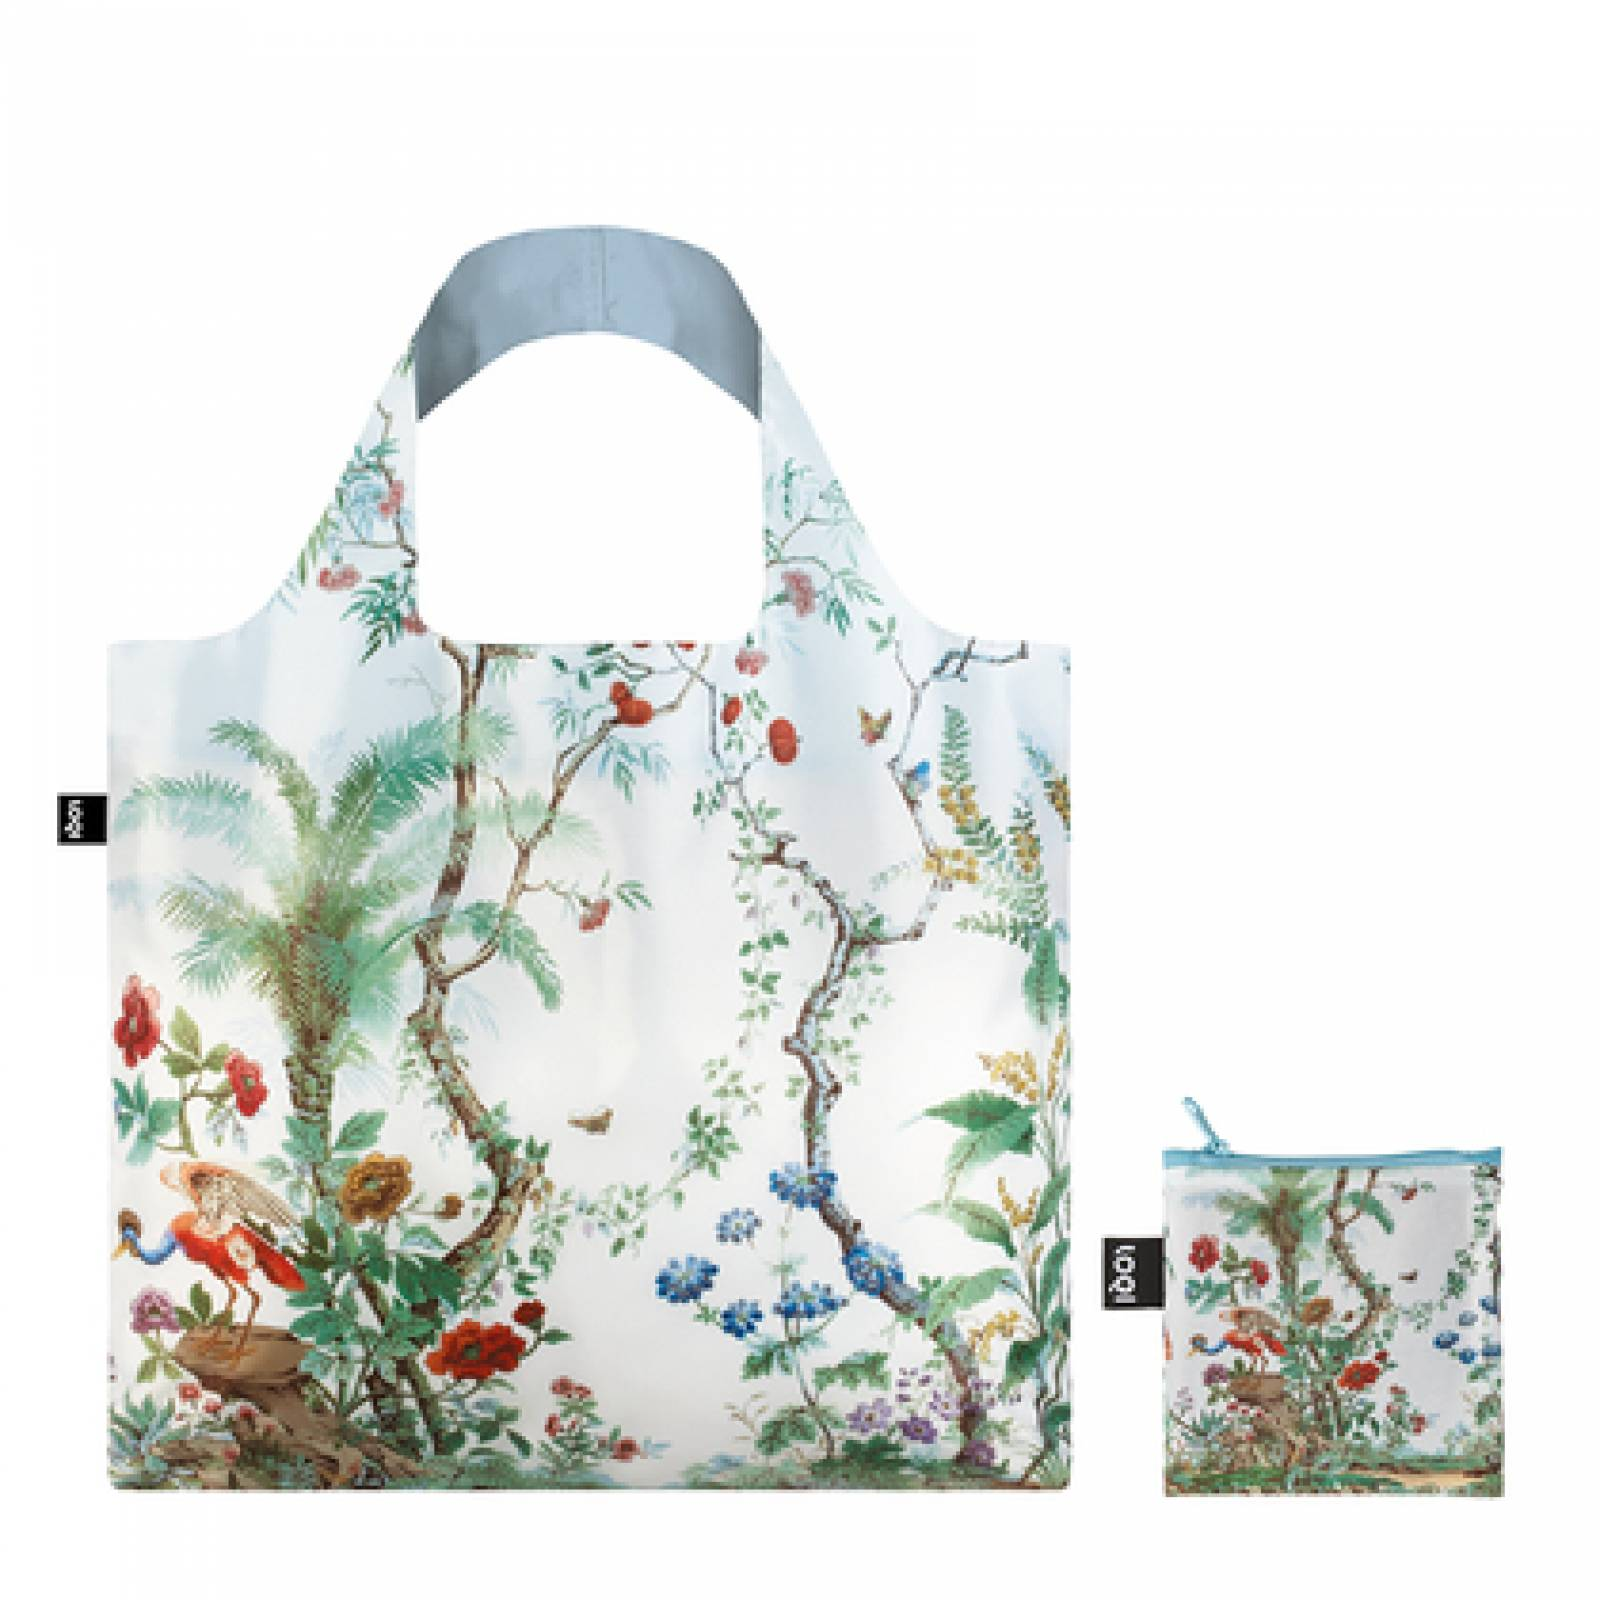 Chinese Decor - Reusable Tote Bag With Pouch thumbnails